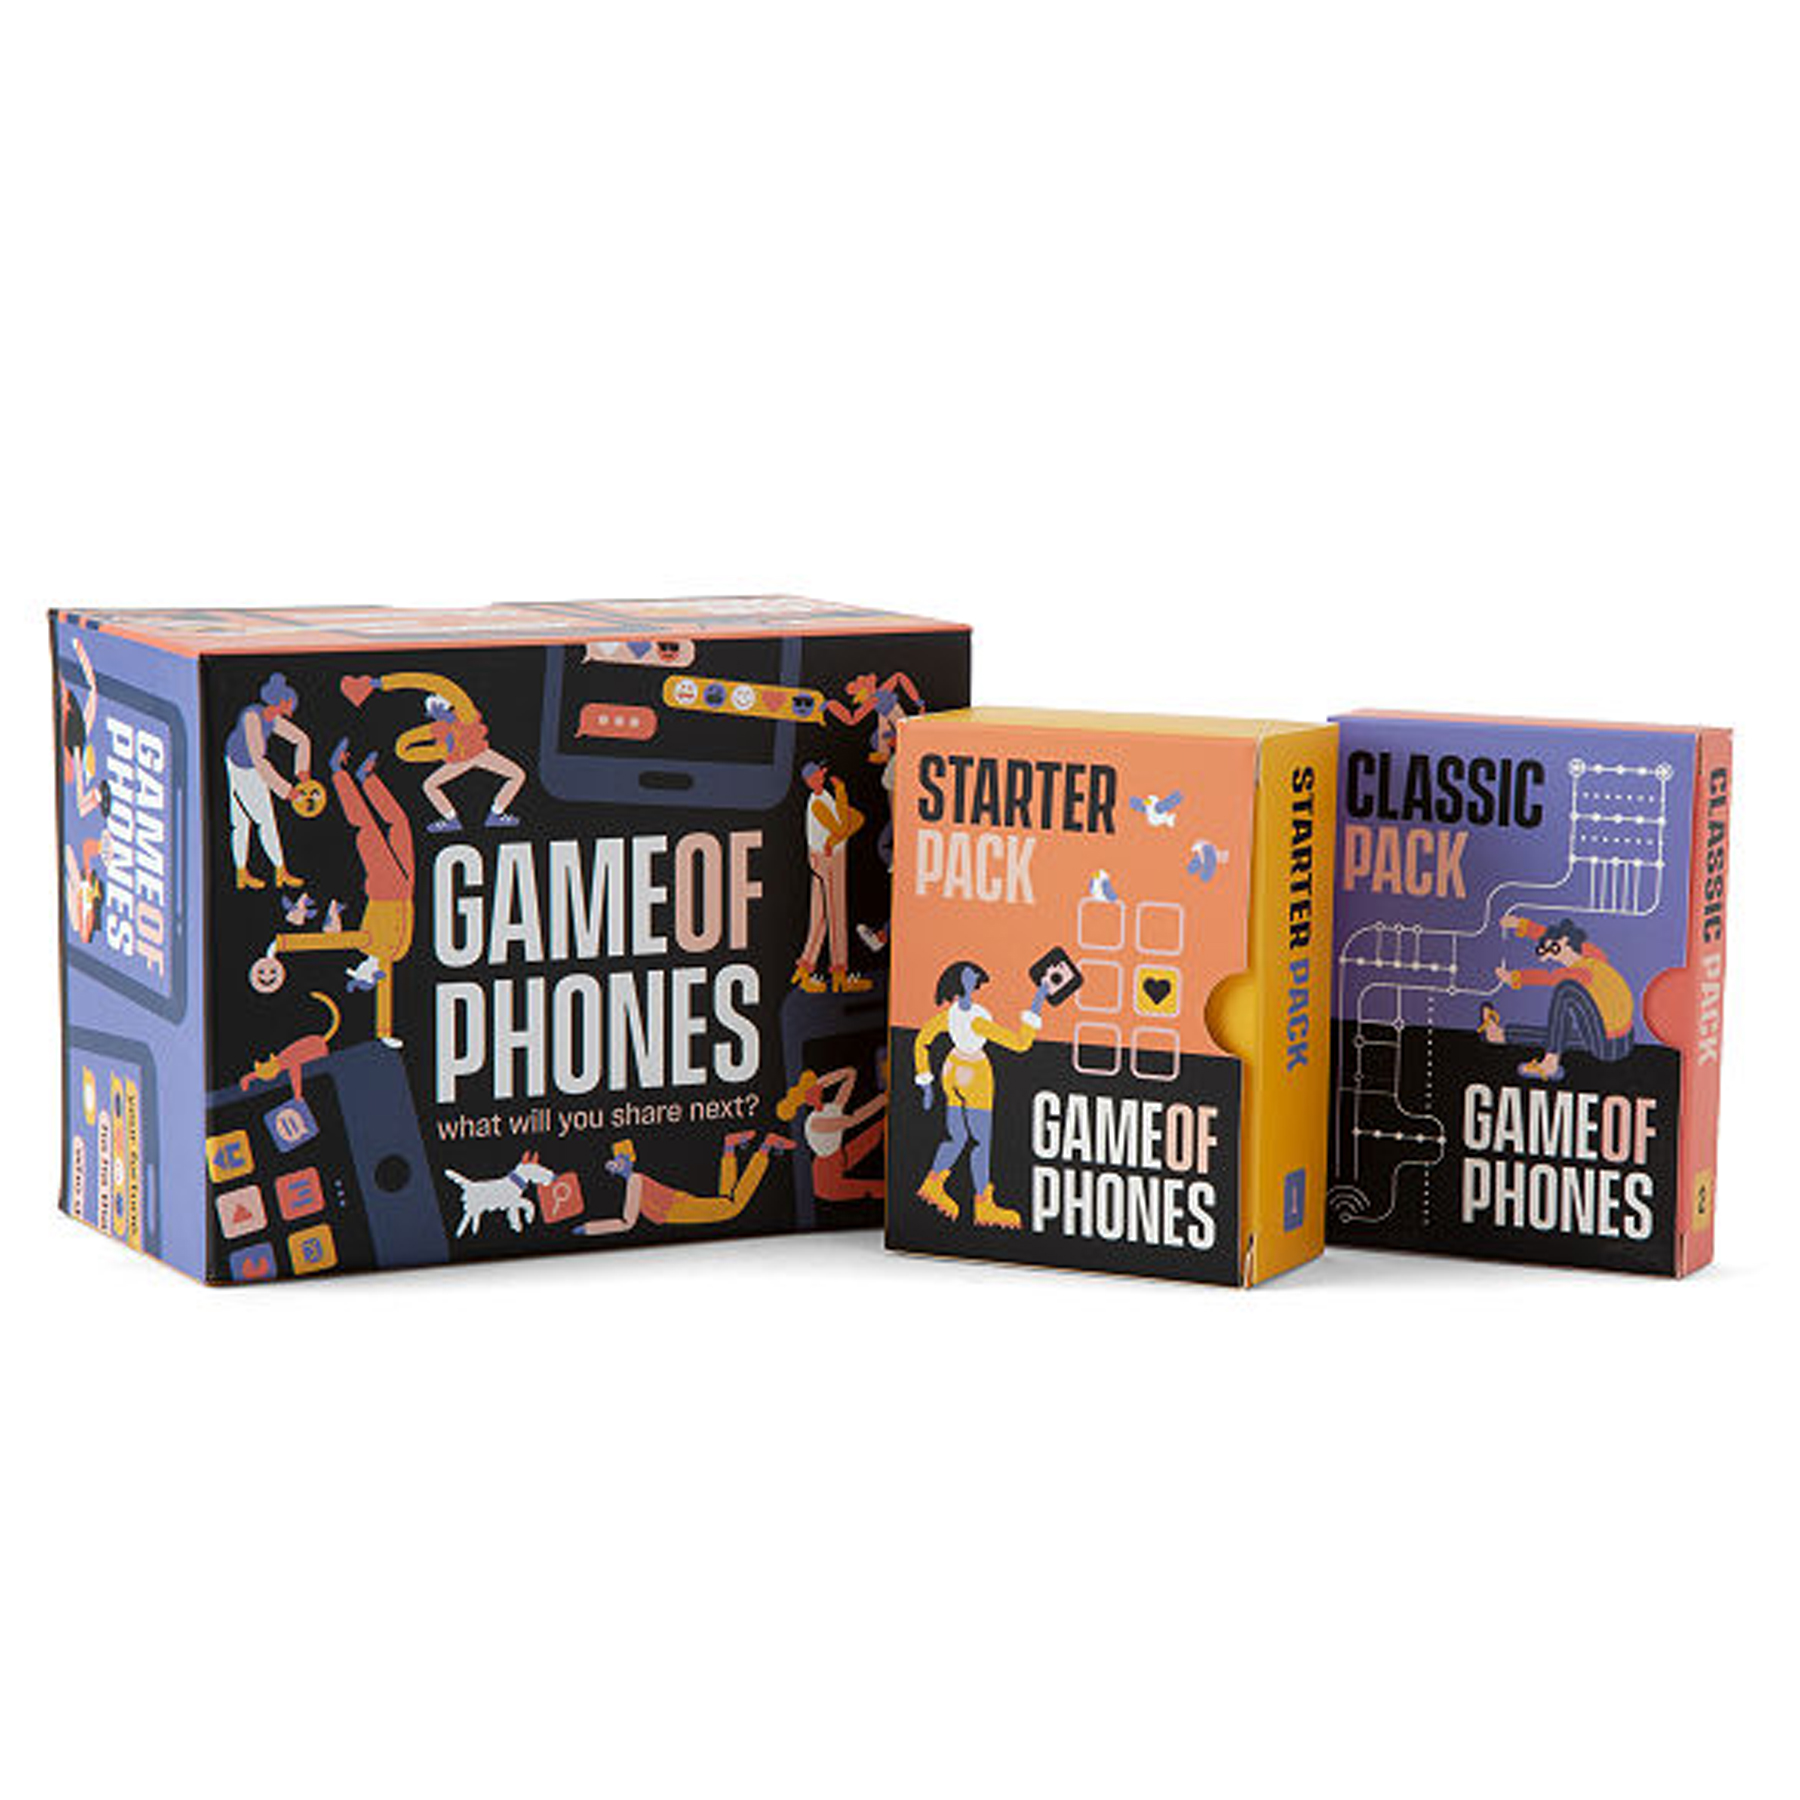 Cheap Christmas Gifts: Game of Phones party game